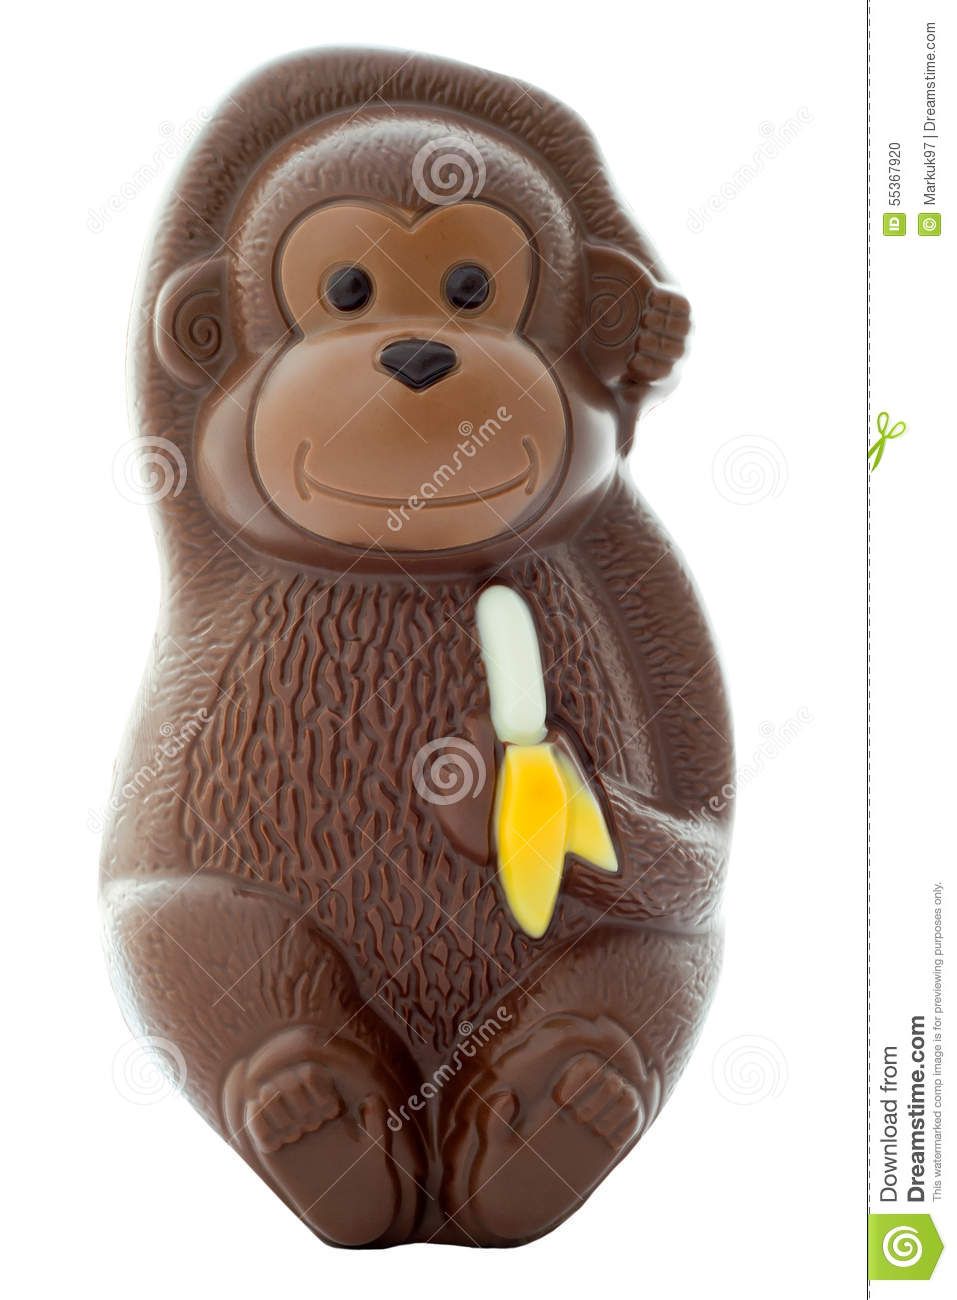 Chocolate Monkey Stock Photo - Image: 55367920